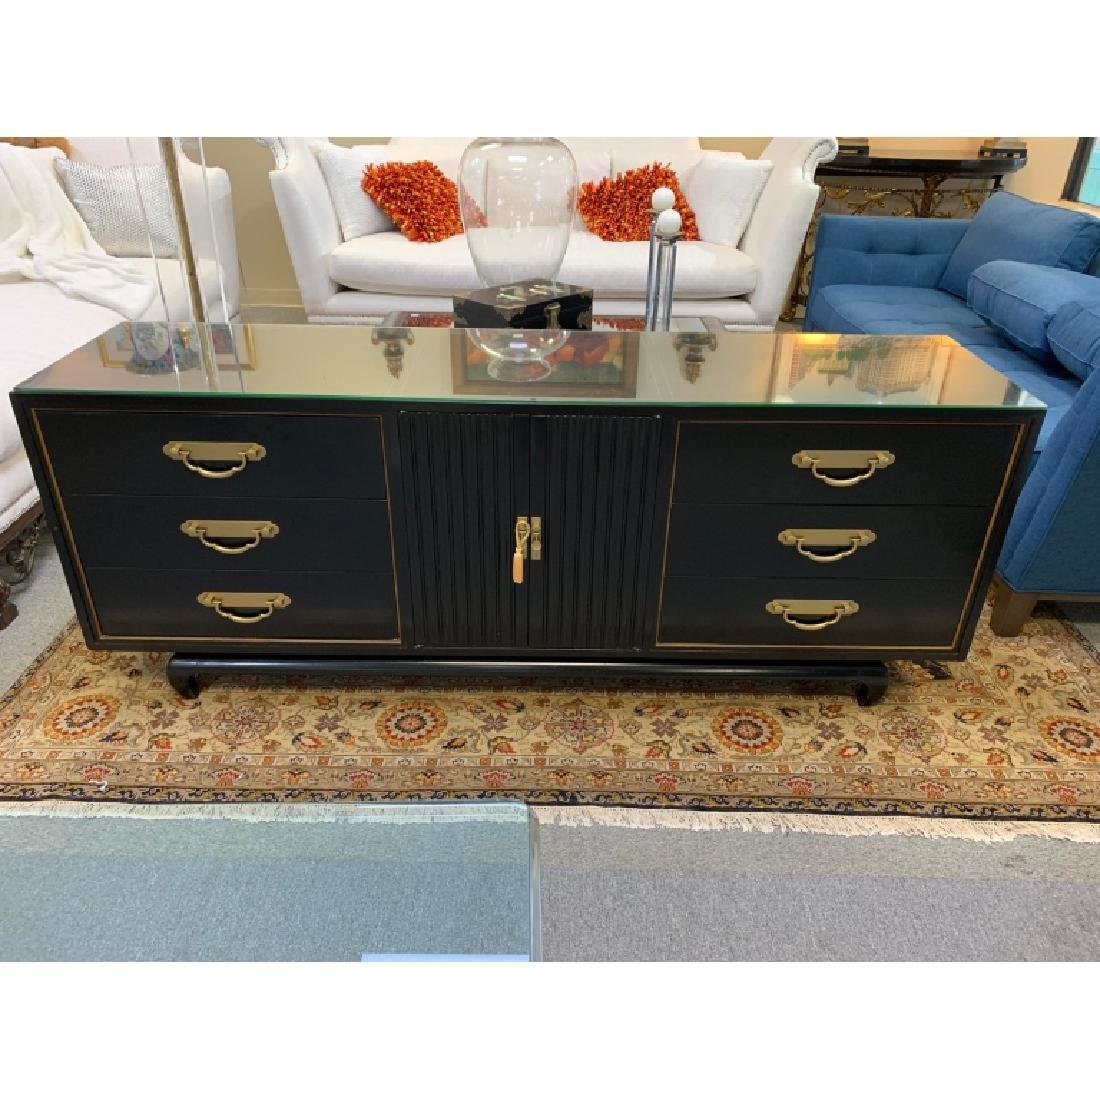 AMERICAN BY MARTINSVILLE CHINOISERIE CREDENZA - 3